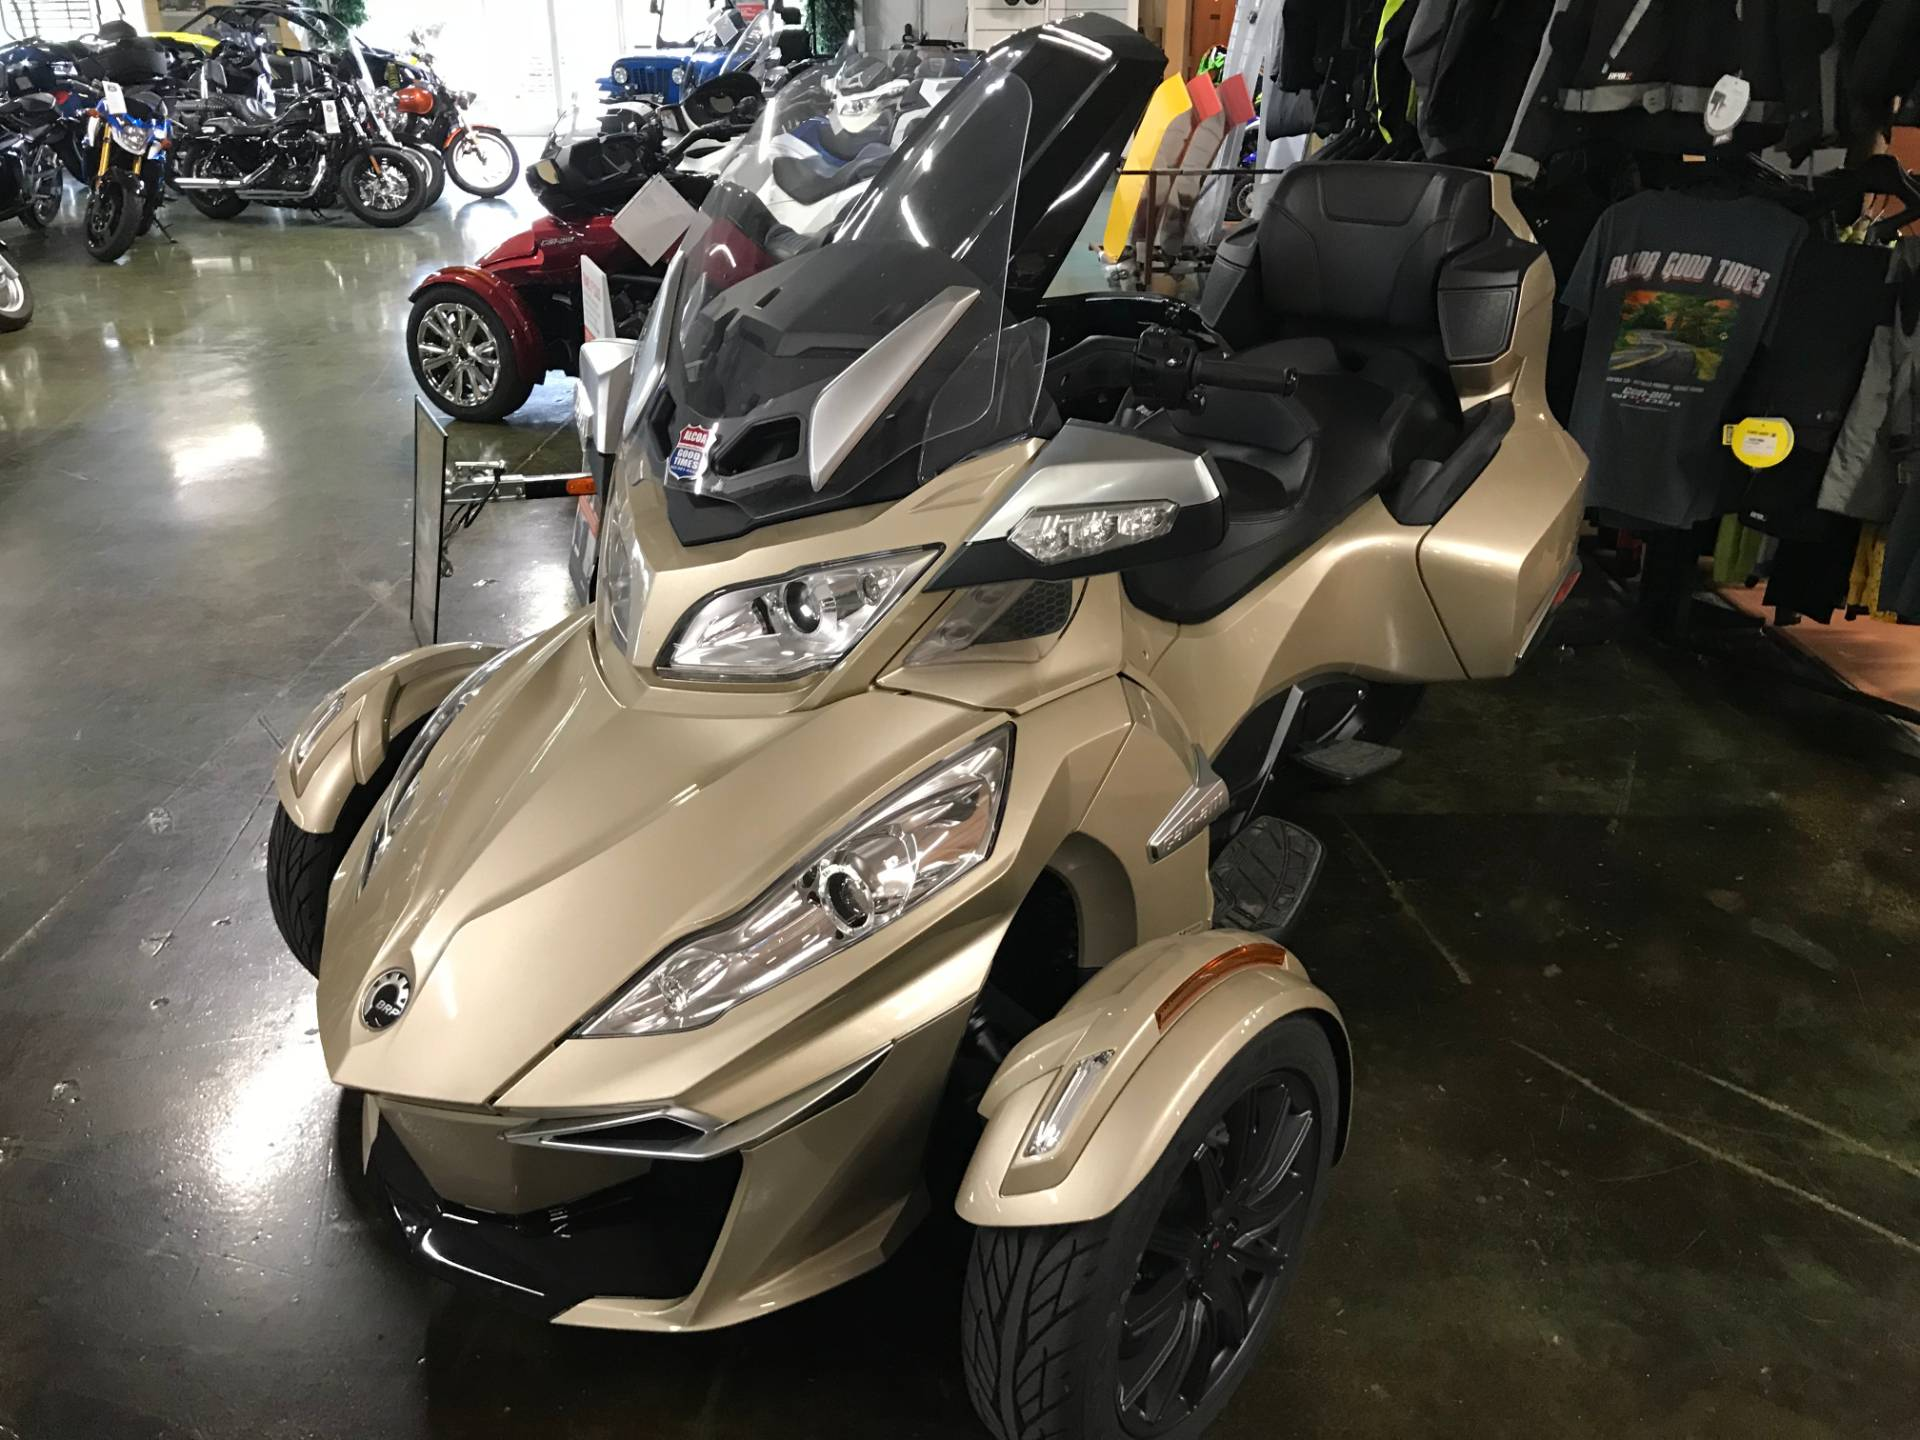 2017 Can-Am Spyder RT-S for sale 1877